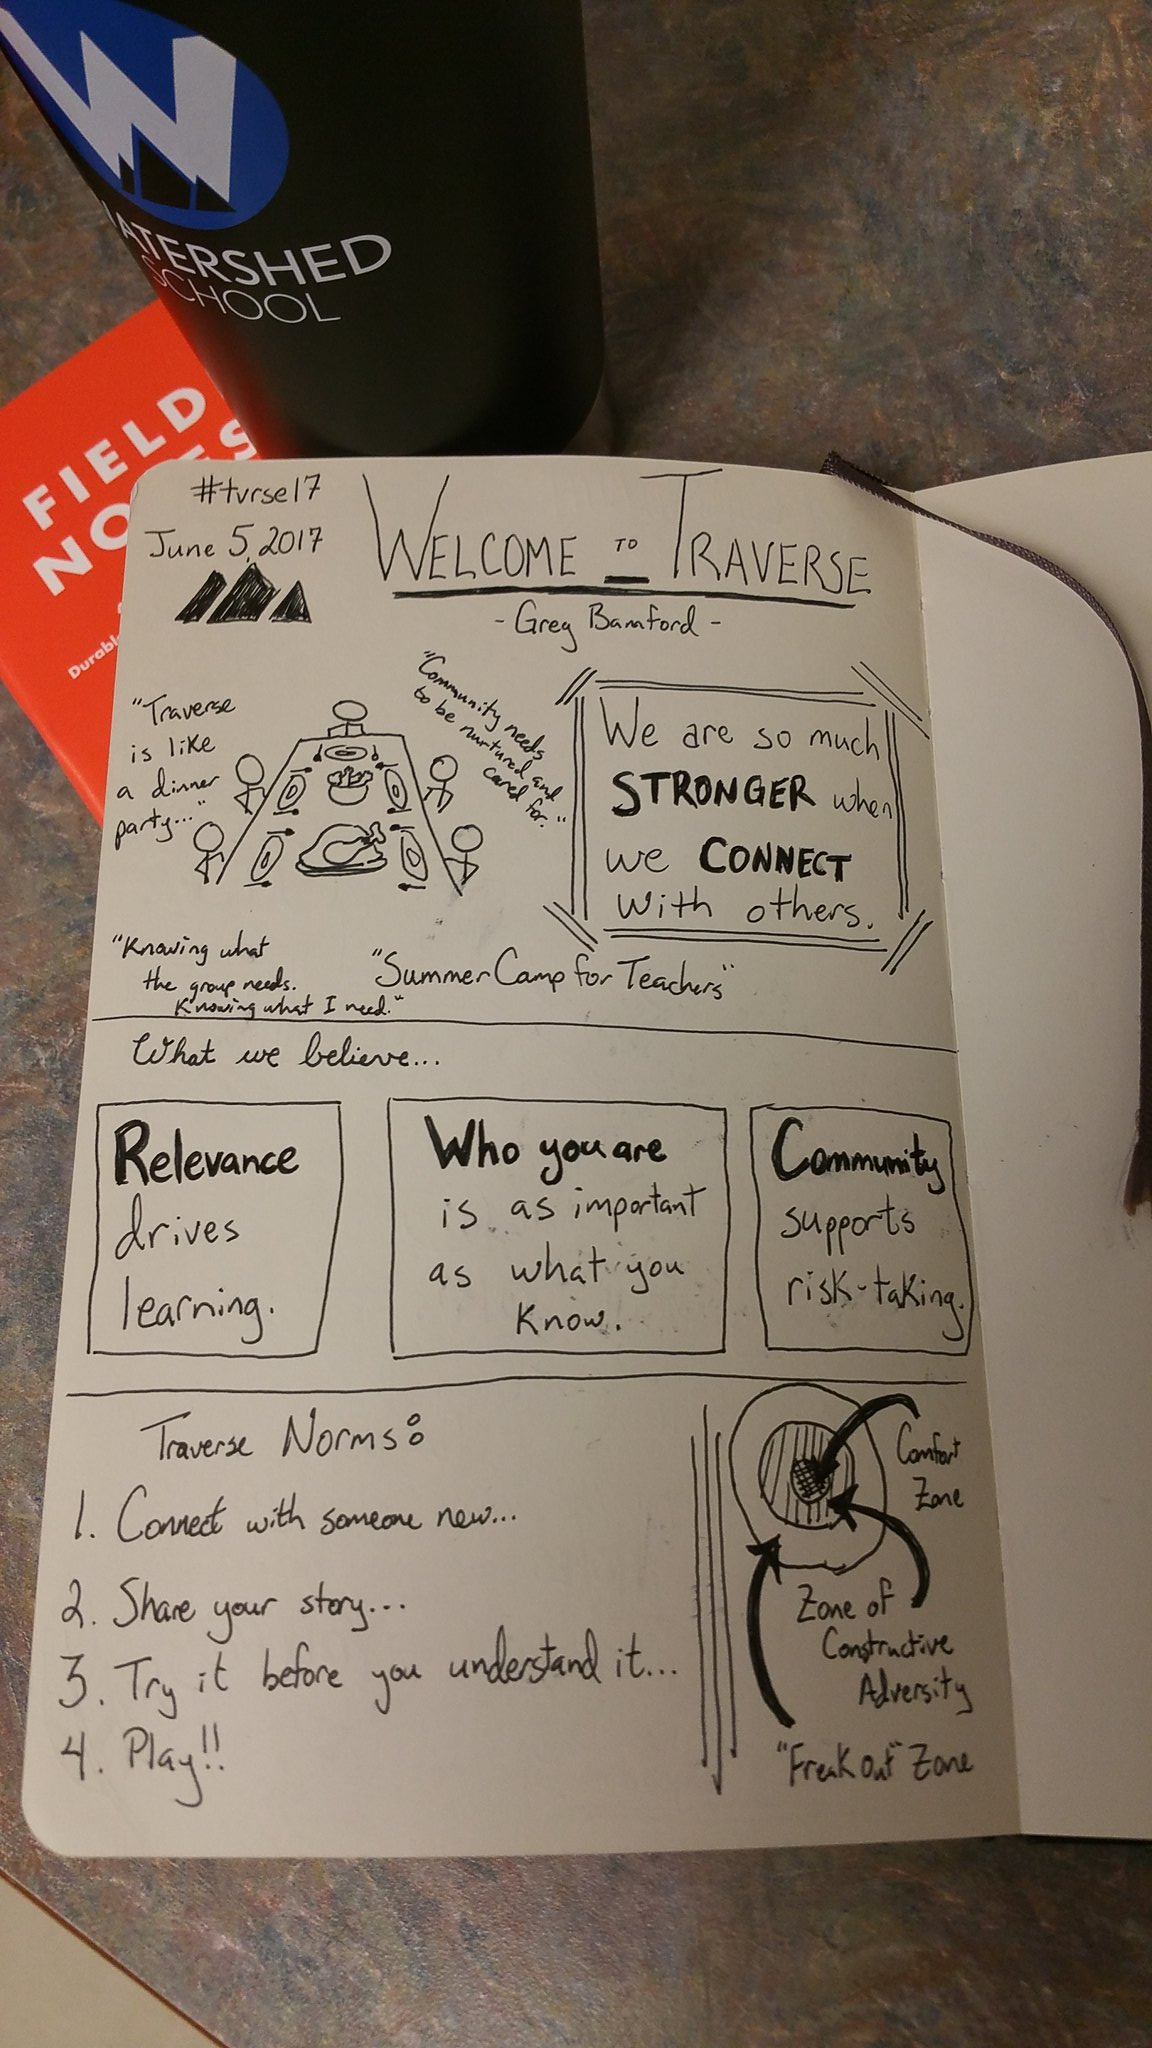 My #sketchnotes from @gregbamford's opening to welcome us to #tvrse17 https://t.co/nq2djK9Chs